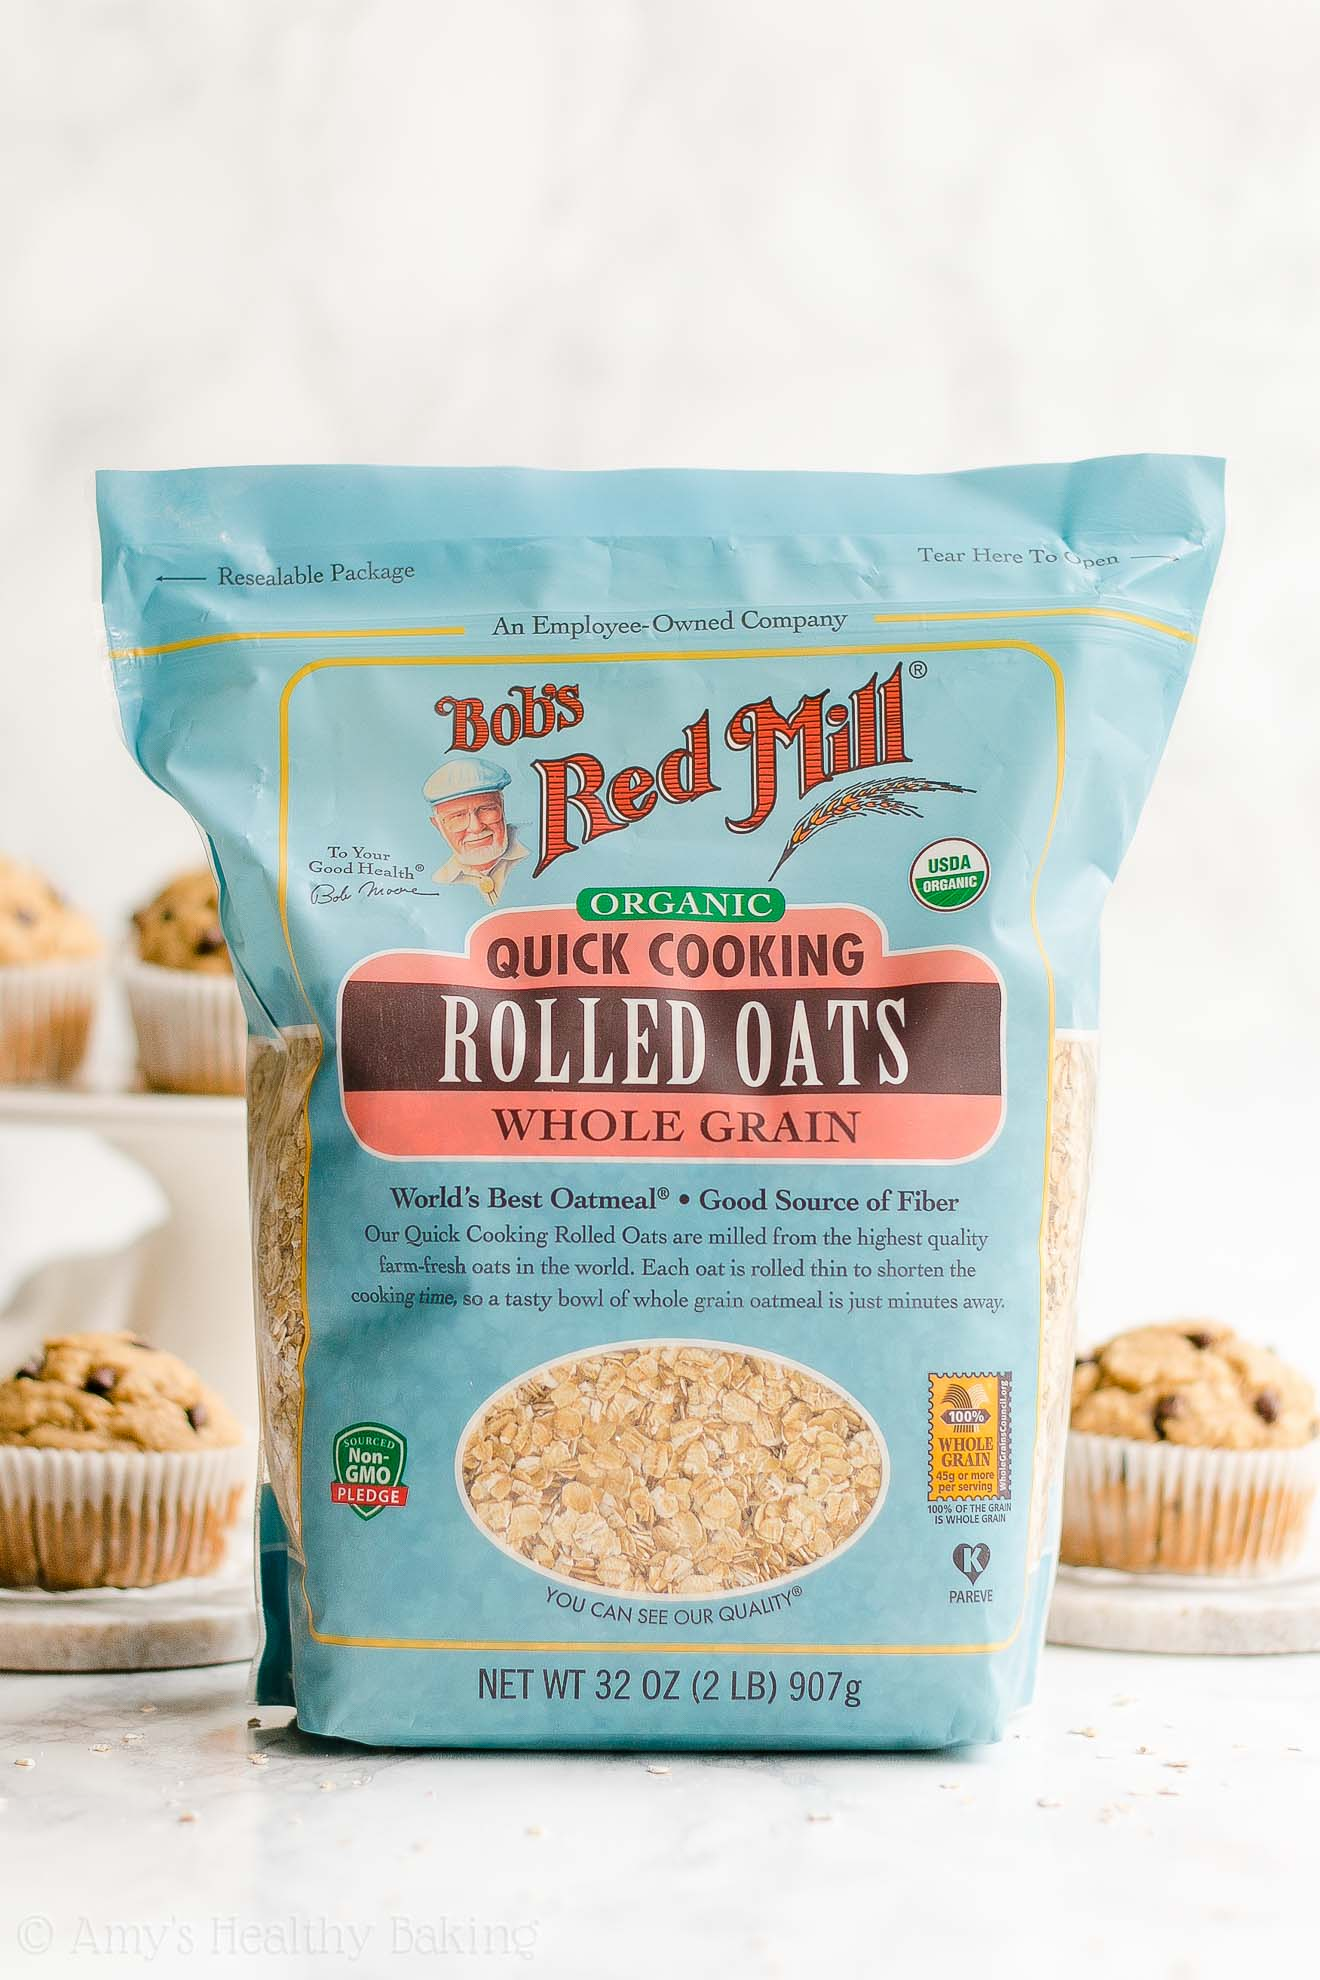 Bob's Red Mill Organic Quick Cooking Rolled Oats